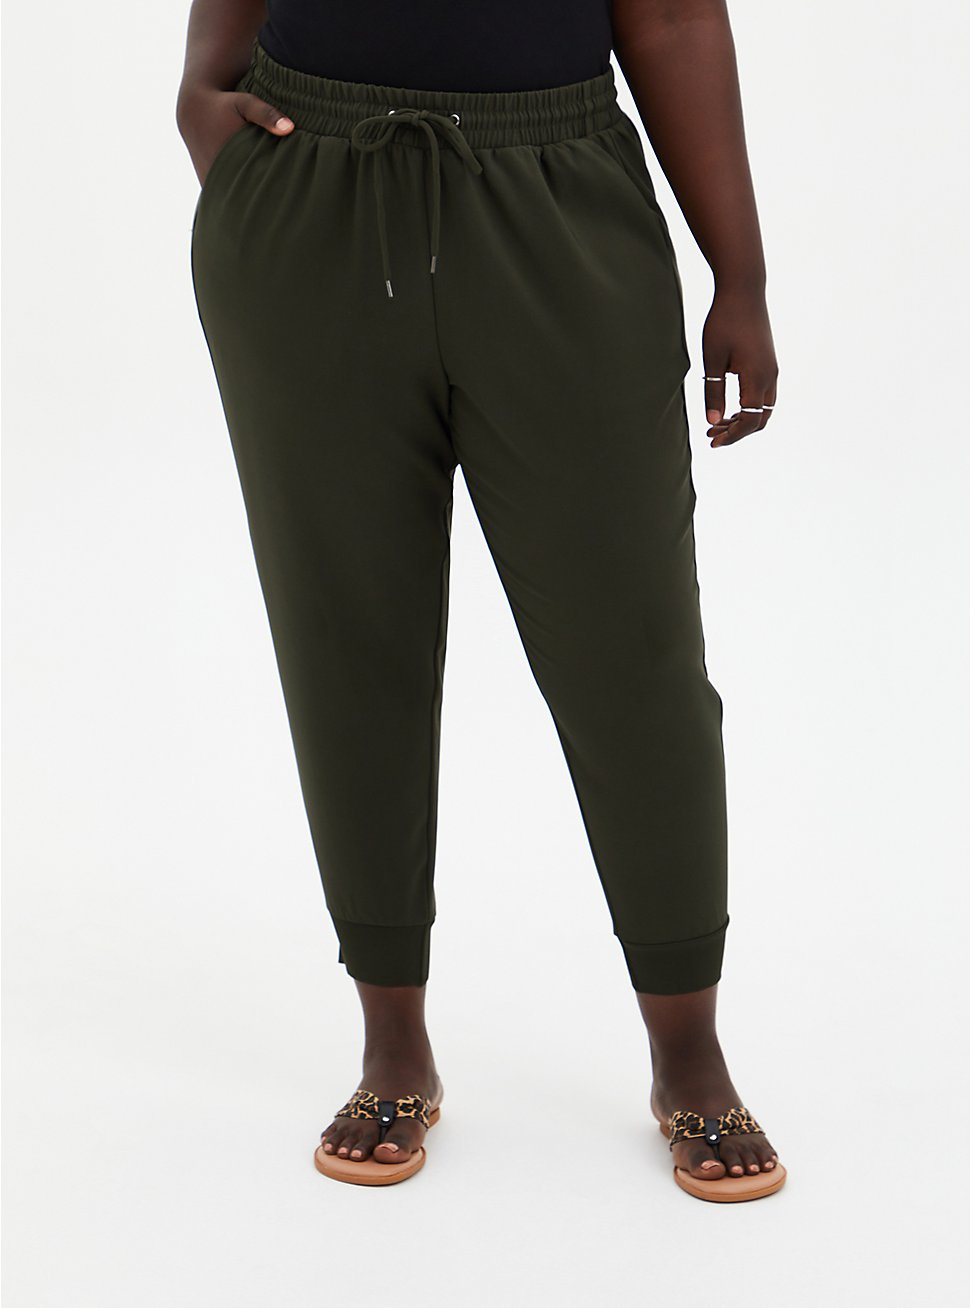 Plus Size Relaxed Fit Jogger - Dressy Twill Forest Green , ROSIN, hi-res